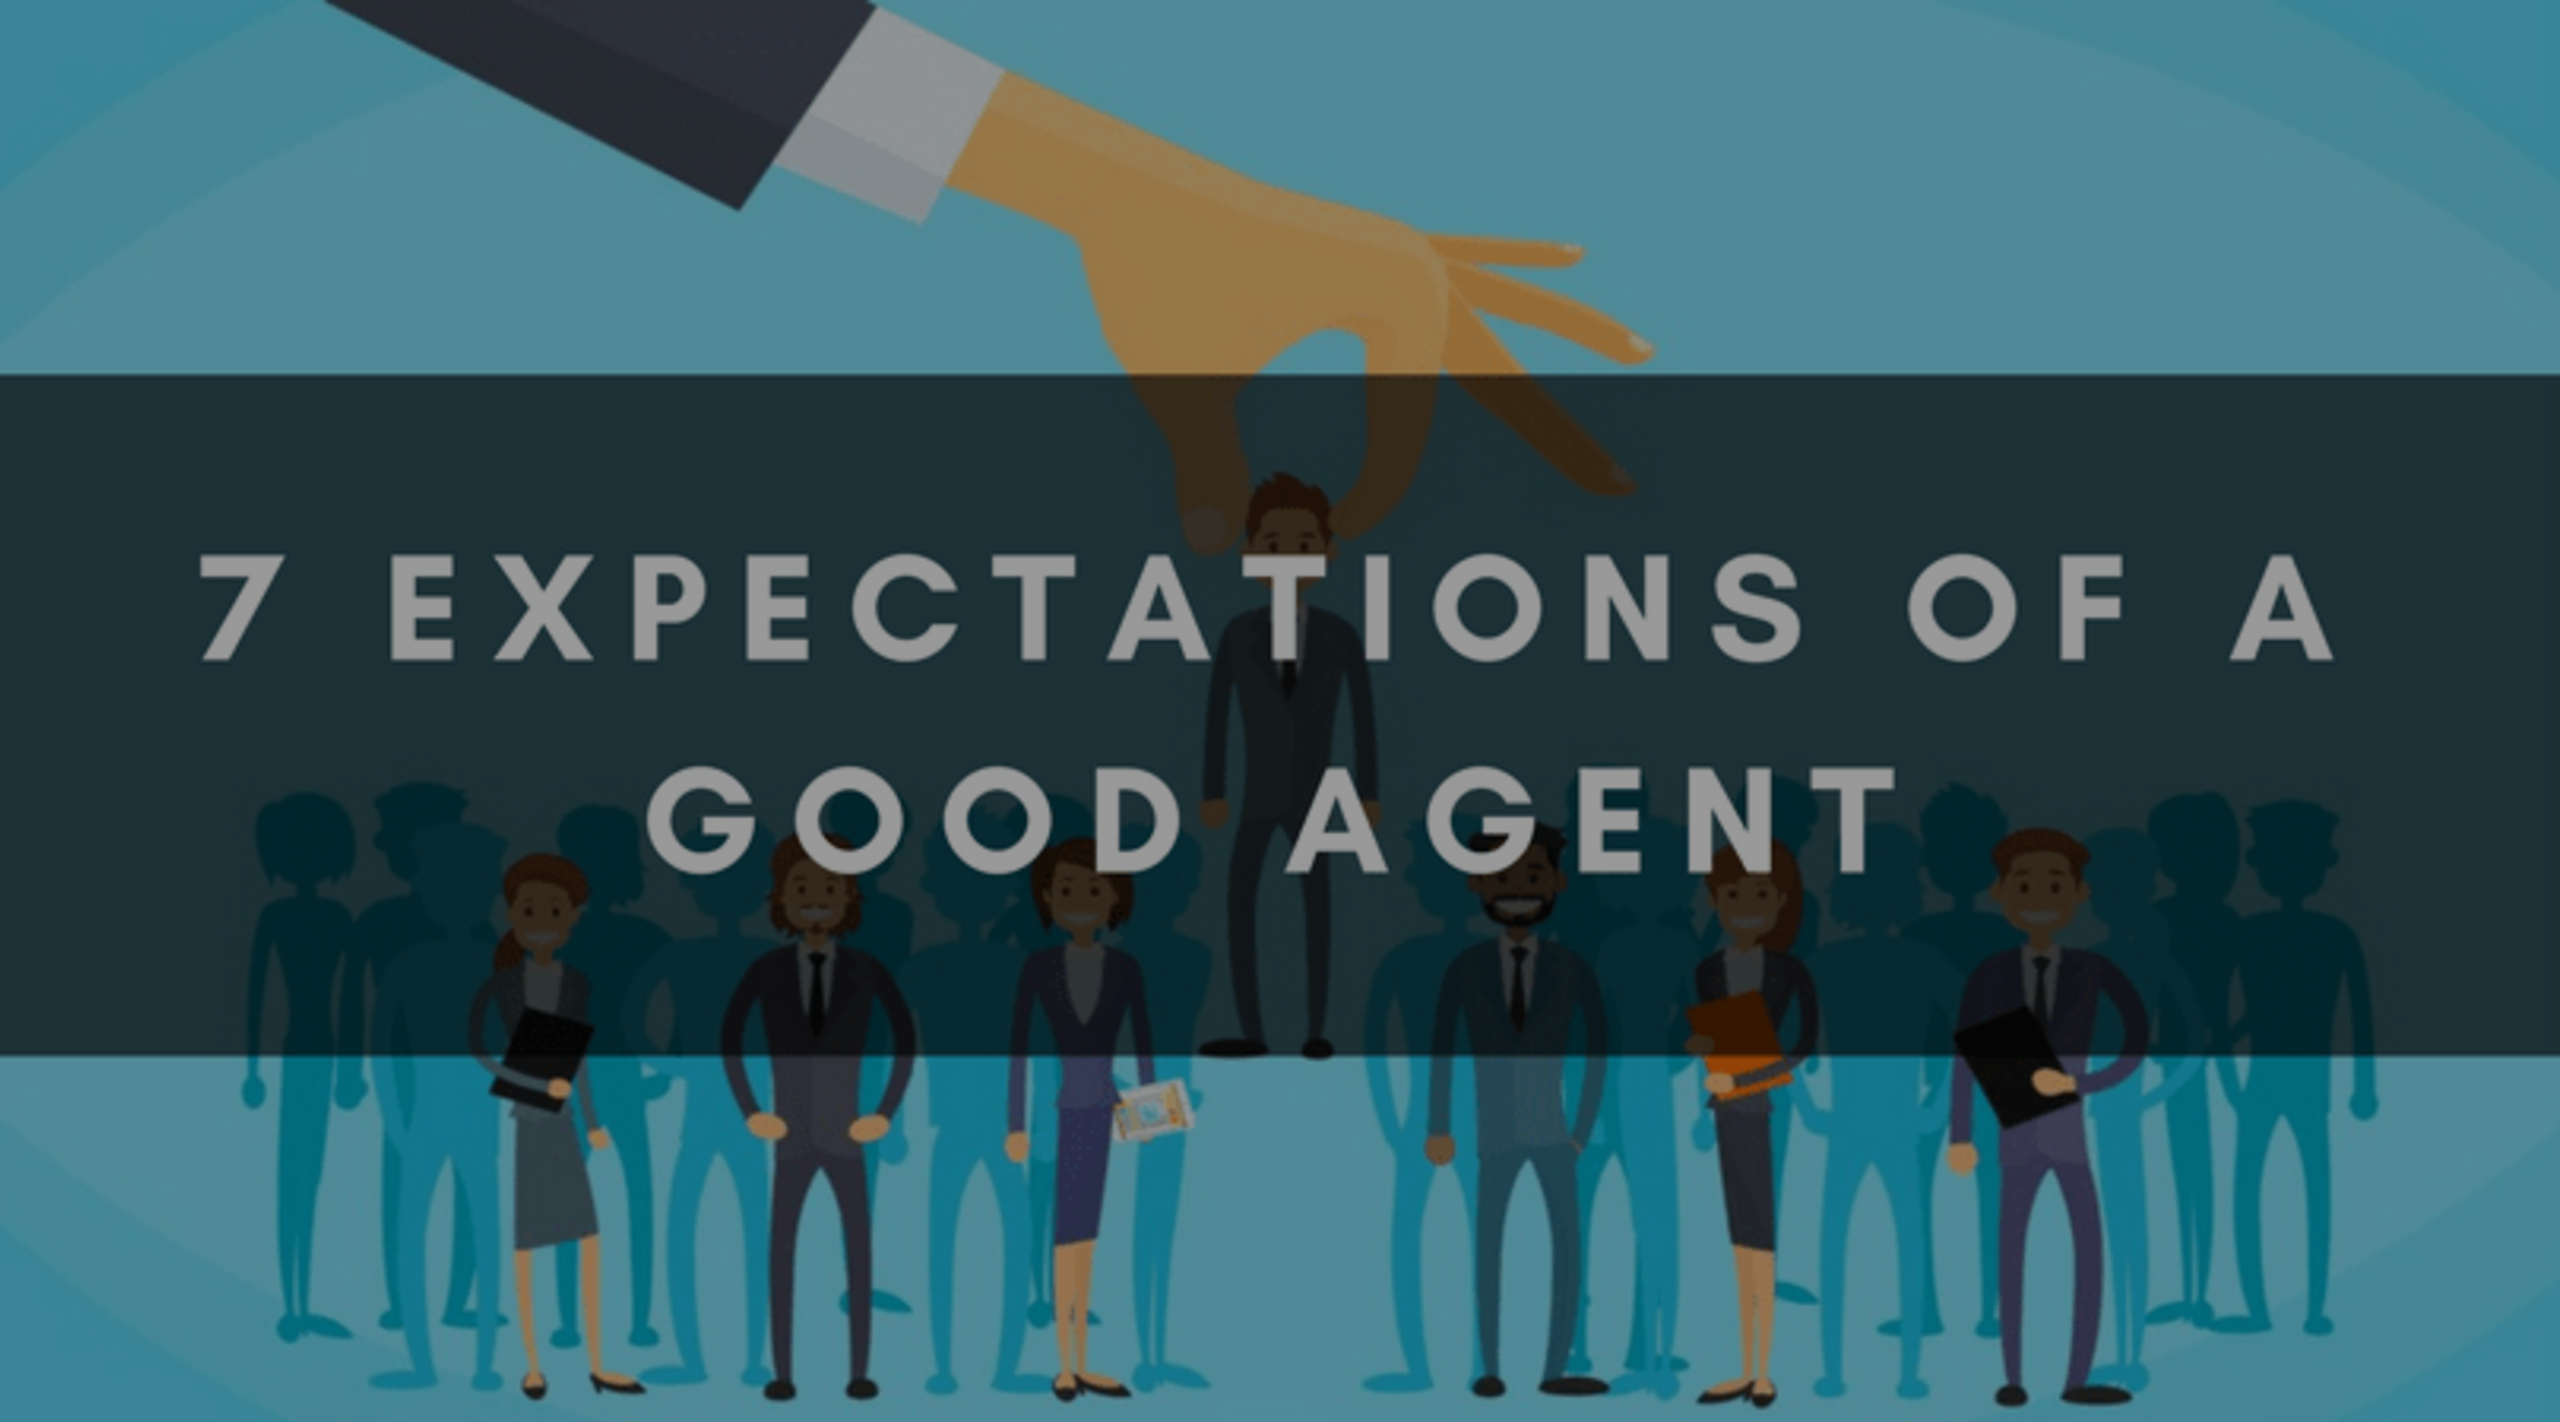 7 EXPECTATIONS OF A GOOD AGENT